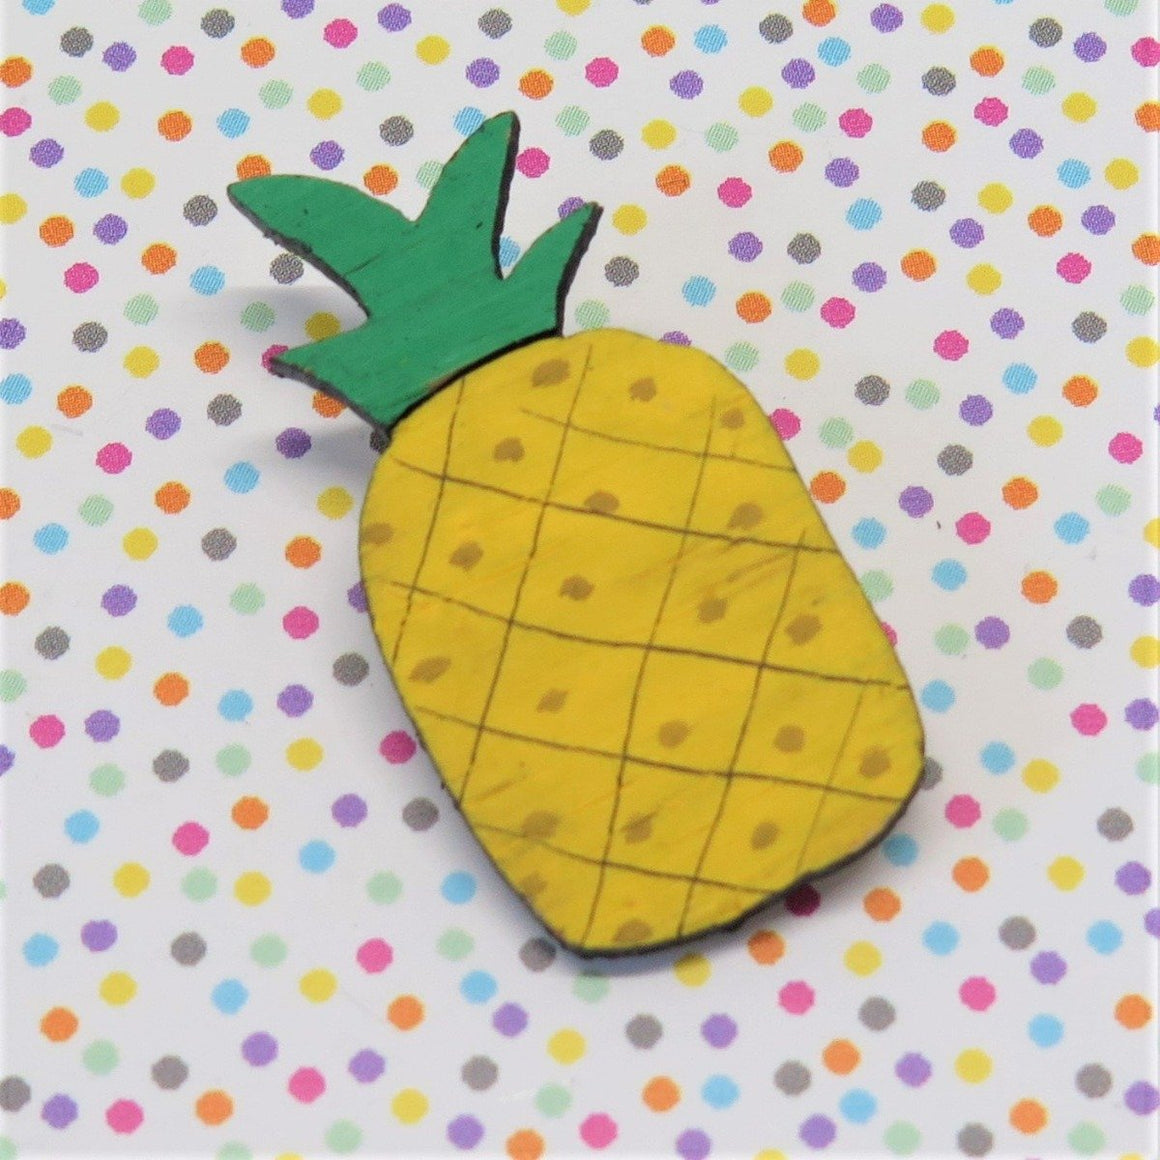 A pin style brooch depicting a bright yellow pineapple with a green stem. Made from bamboo wood and hand painted. Shown on a polka dot background.